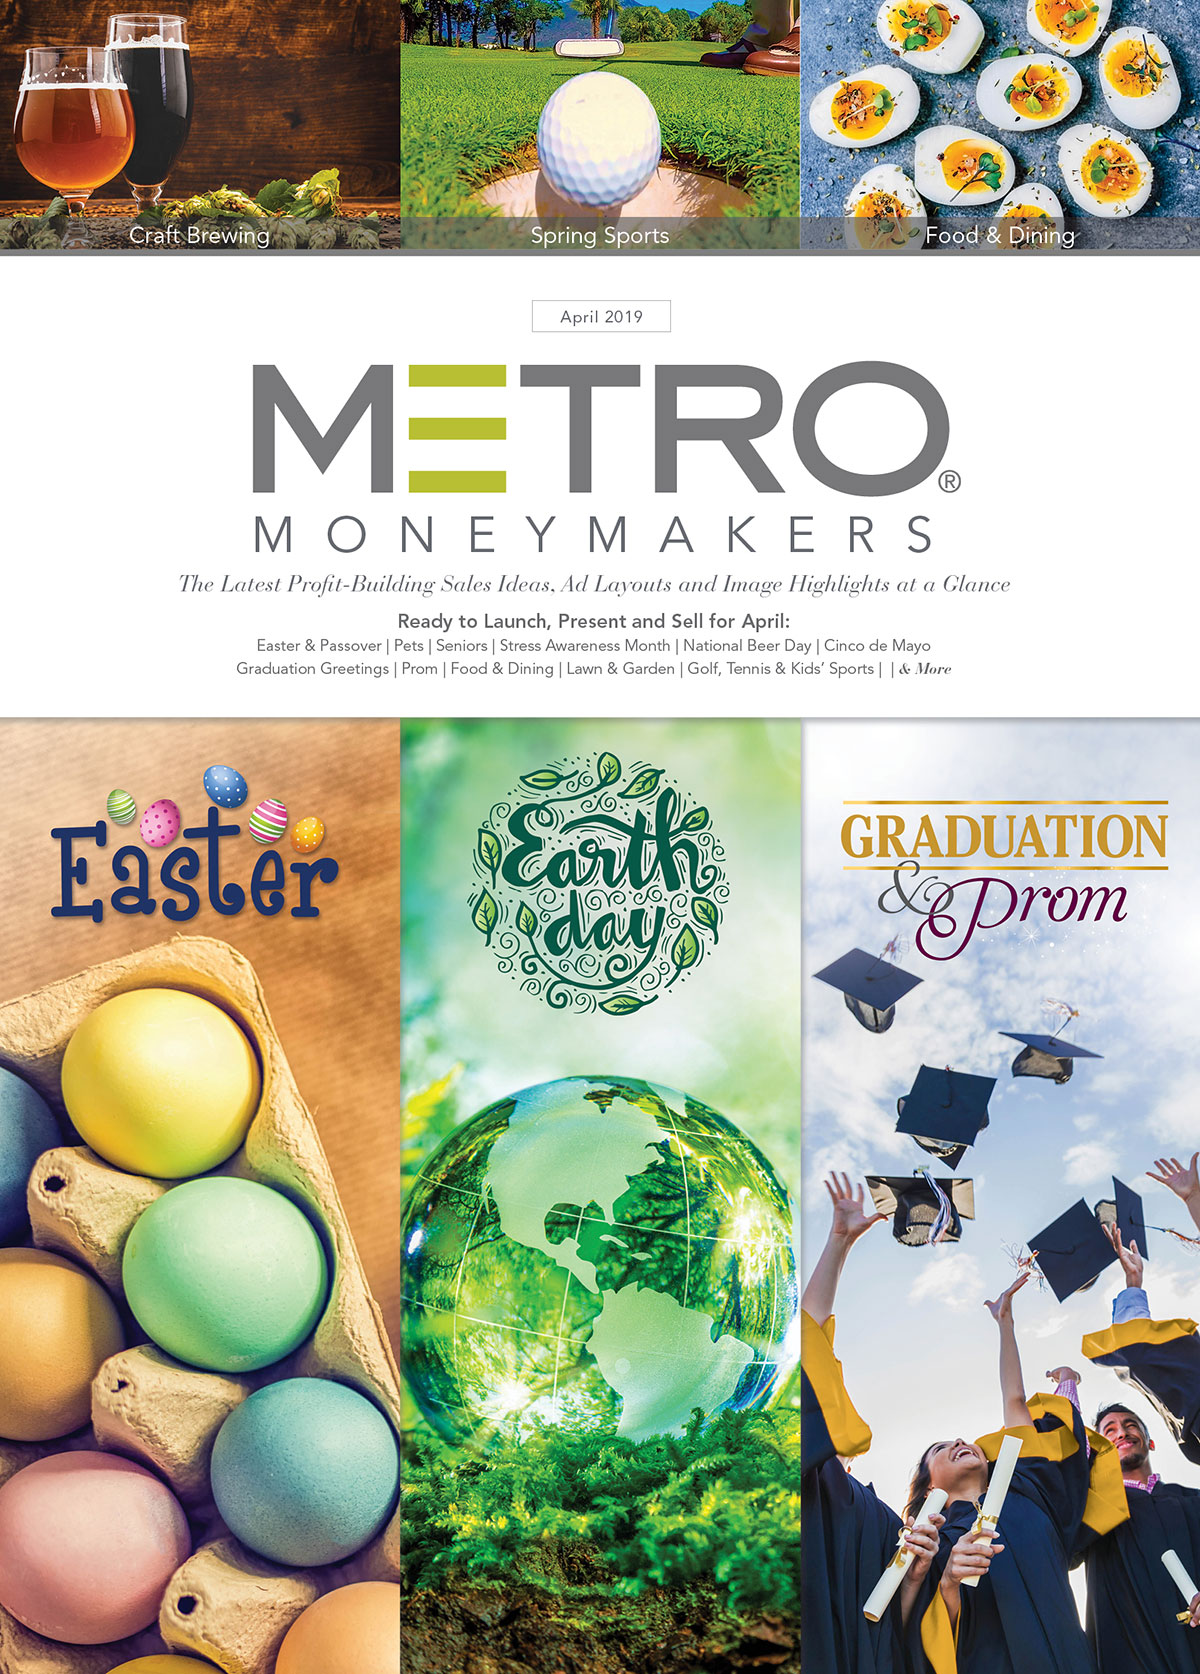 Metro Creative Login : metro, creative, login, MetroCreativeConnection, Online, Gateway, Moneymaking, Creative, Services, Metro, Graphics